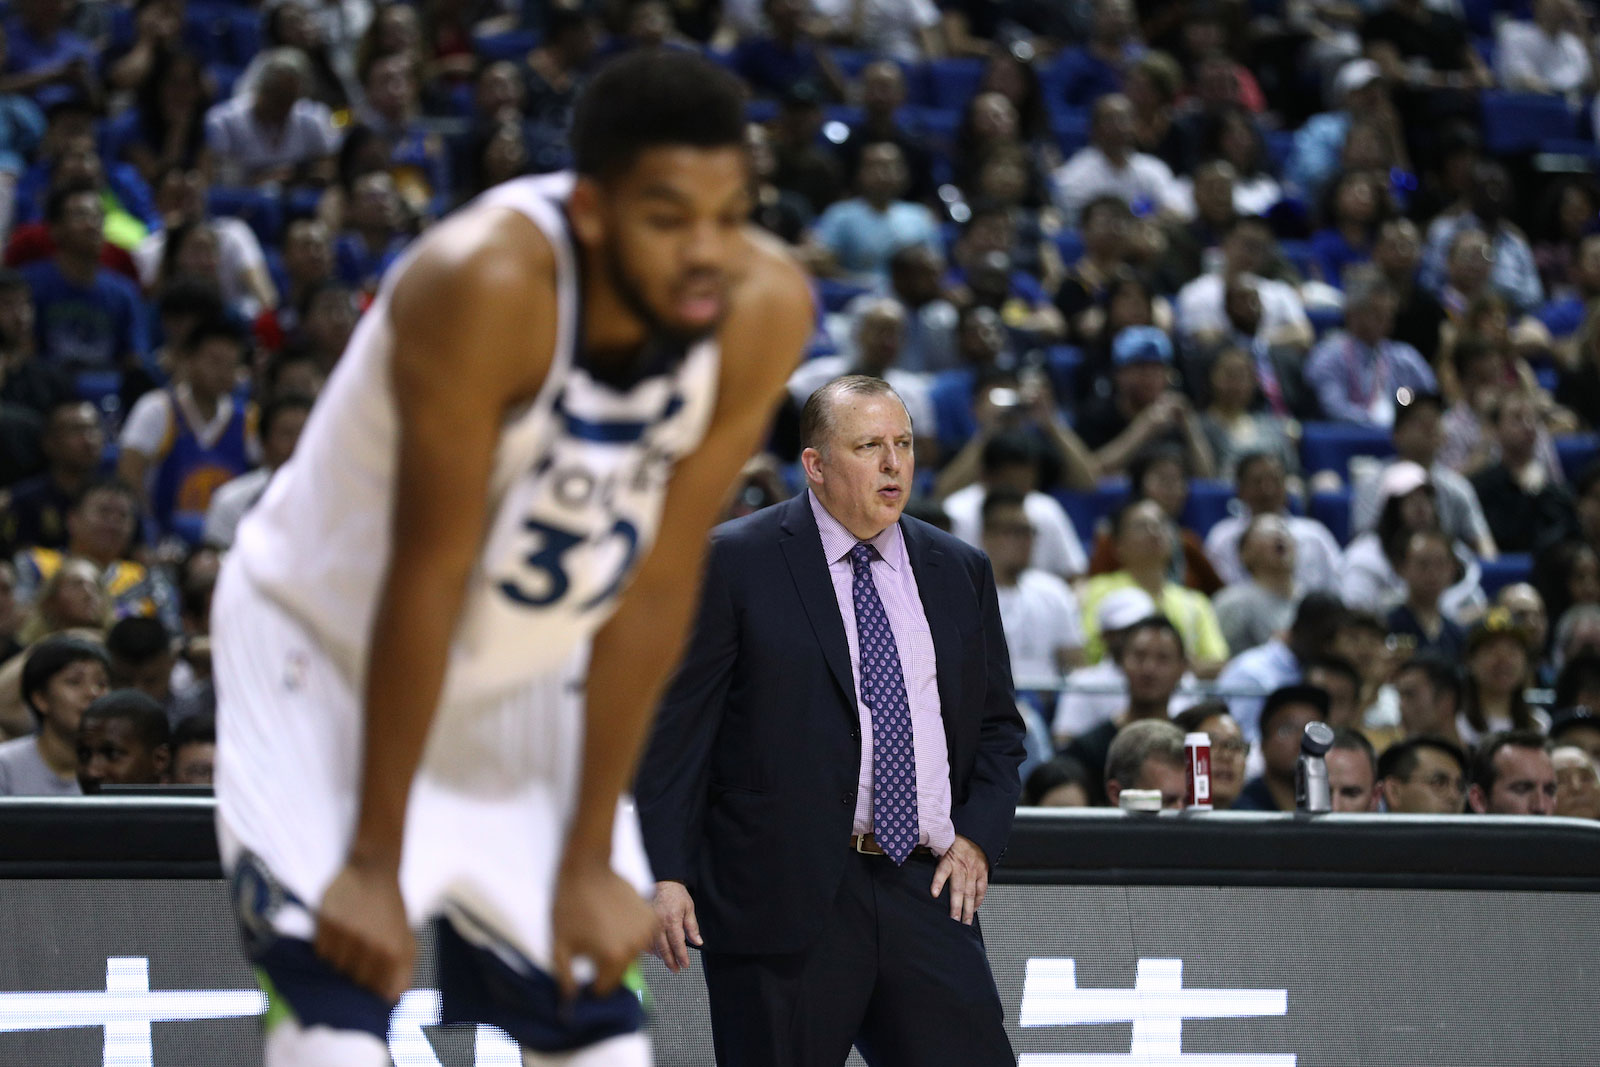 Head coach Tom Thibodeau of the Minnesota Timberwolves looks on as Karl-Anthony Towns #32 of the Minnesota Timberwolves on court during the game between the Minnesota Timberwolves and the Golden State Warriors as part of 2017 NBA Global Games China at Mercedes-Benz Arena on October 8, 2017 in Shanghai, China.